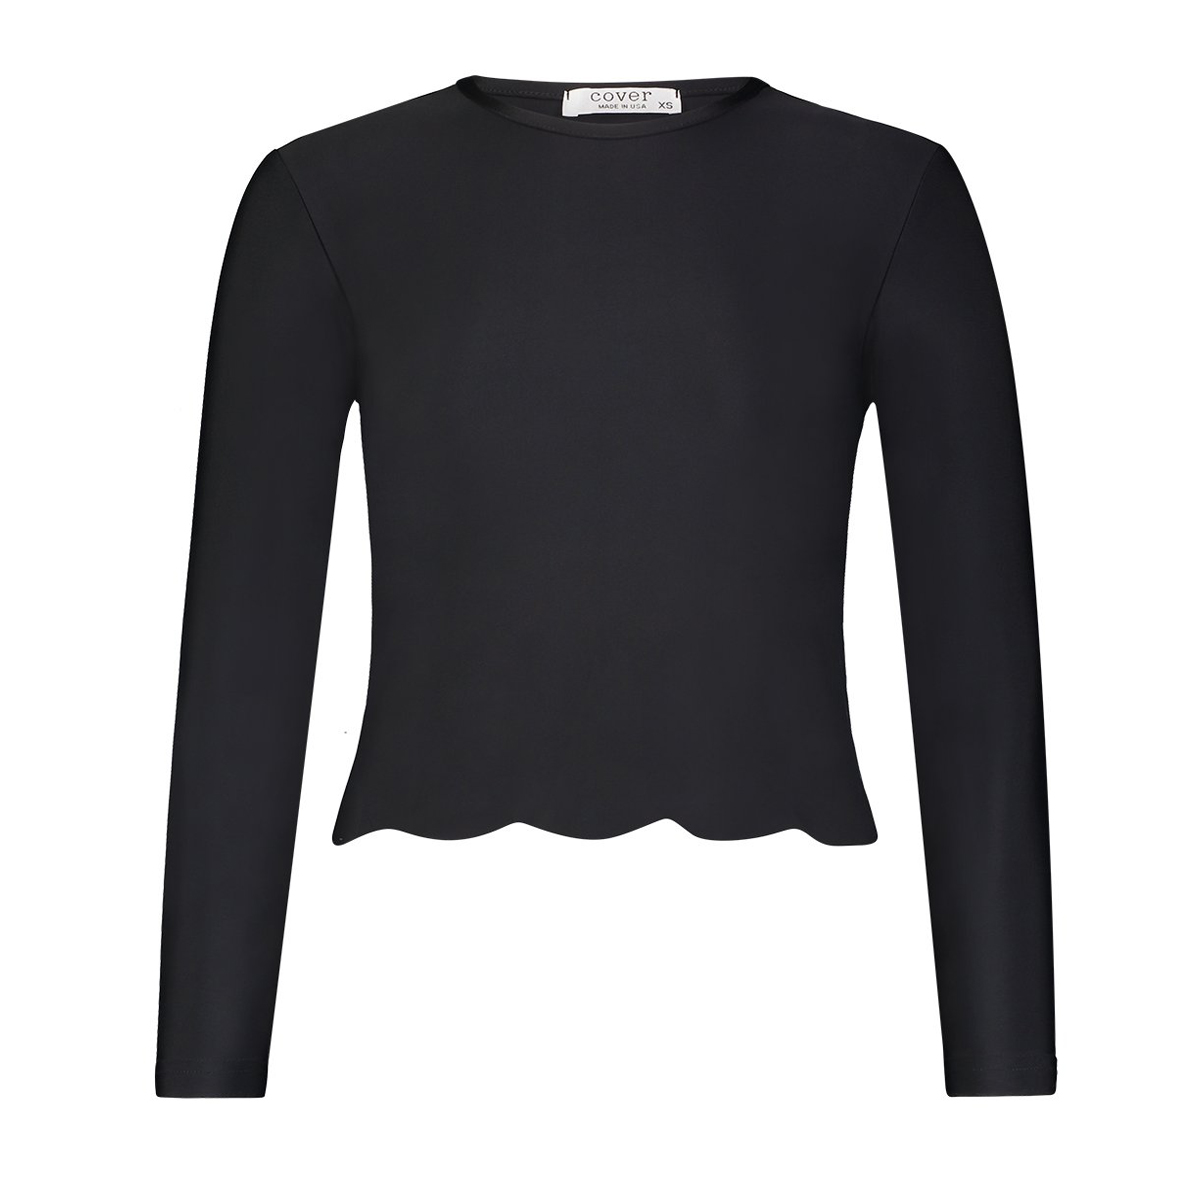 Cover Swim Women's Scallop Top Long Sleeve Swim Top in Black